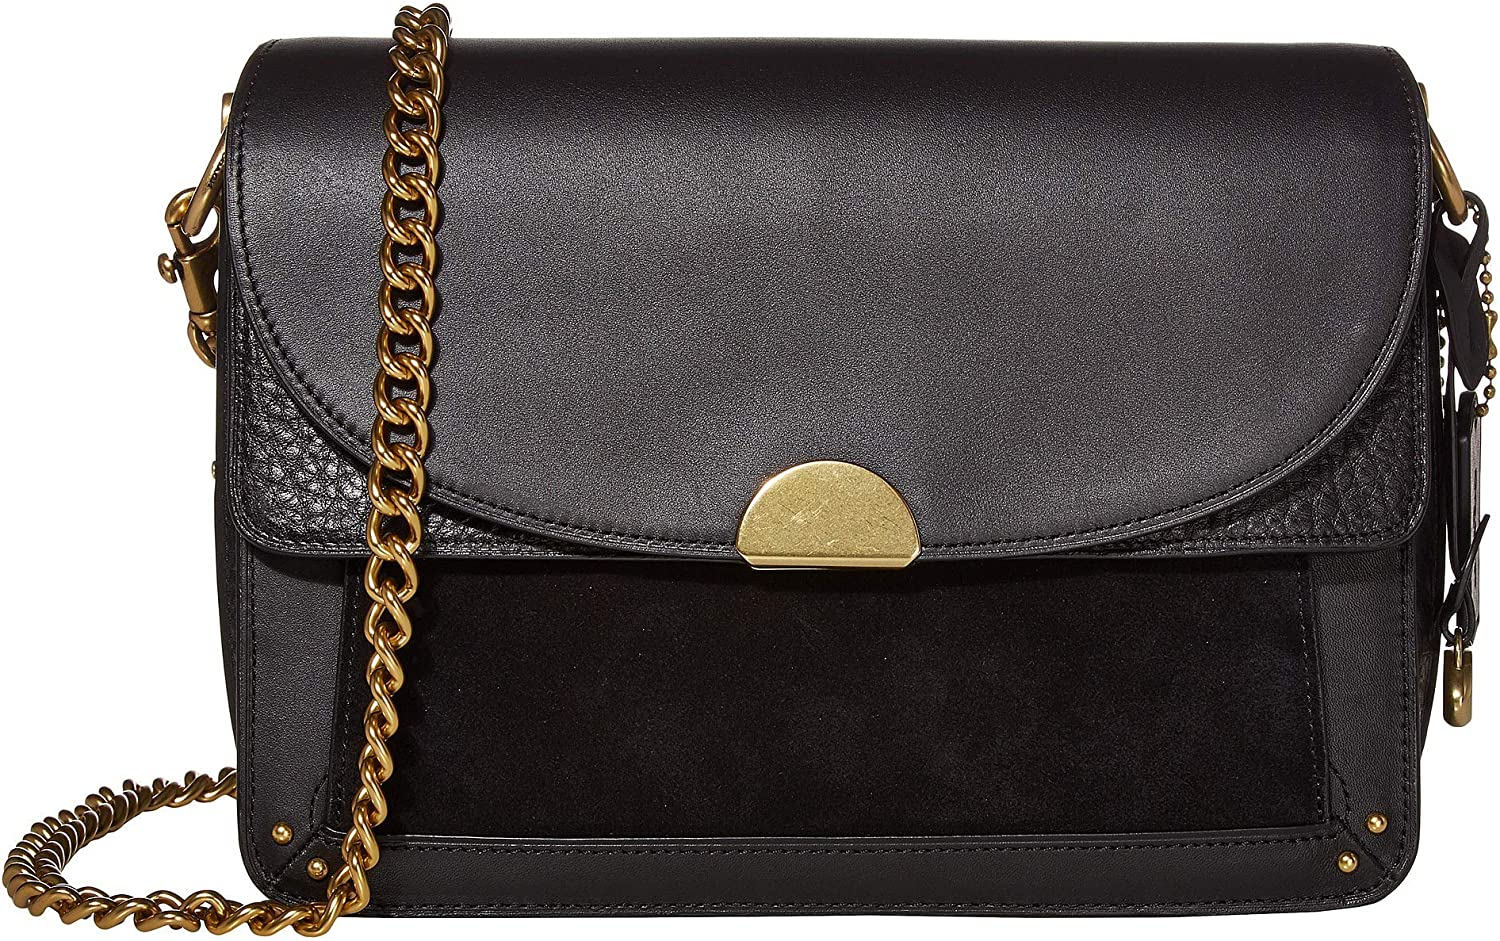 COACH Mixed Leather Dreamer Shoulder Bag Black/Brass One Size